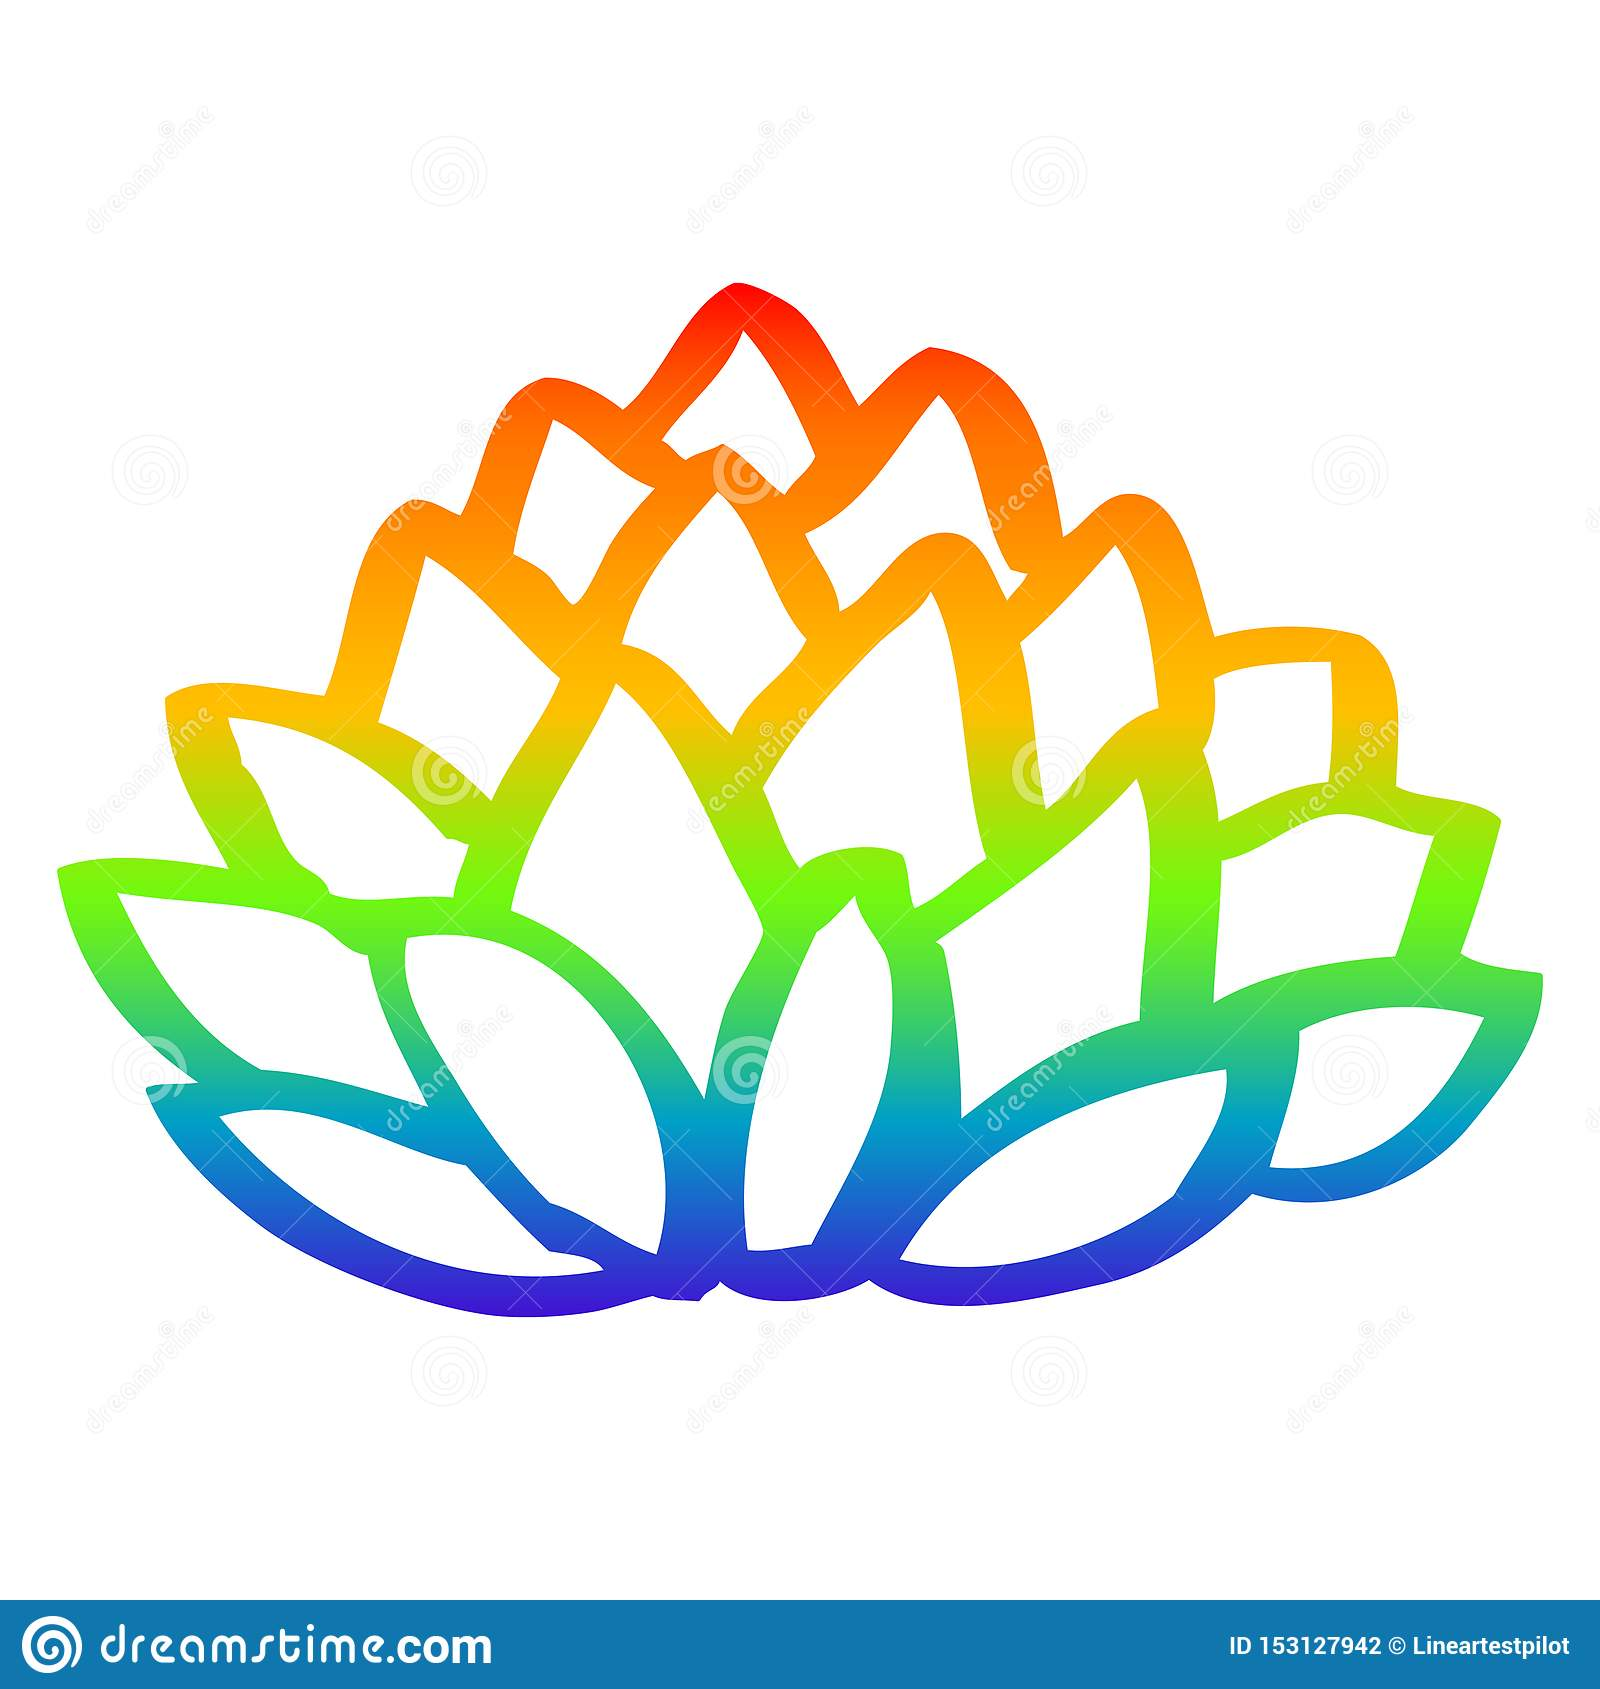 A Creative Rainbow Gradient Line Drawing Cartoon Pile Of Leaves Stock Vector Illustration Of Hand Scribble 153127942